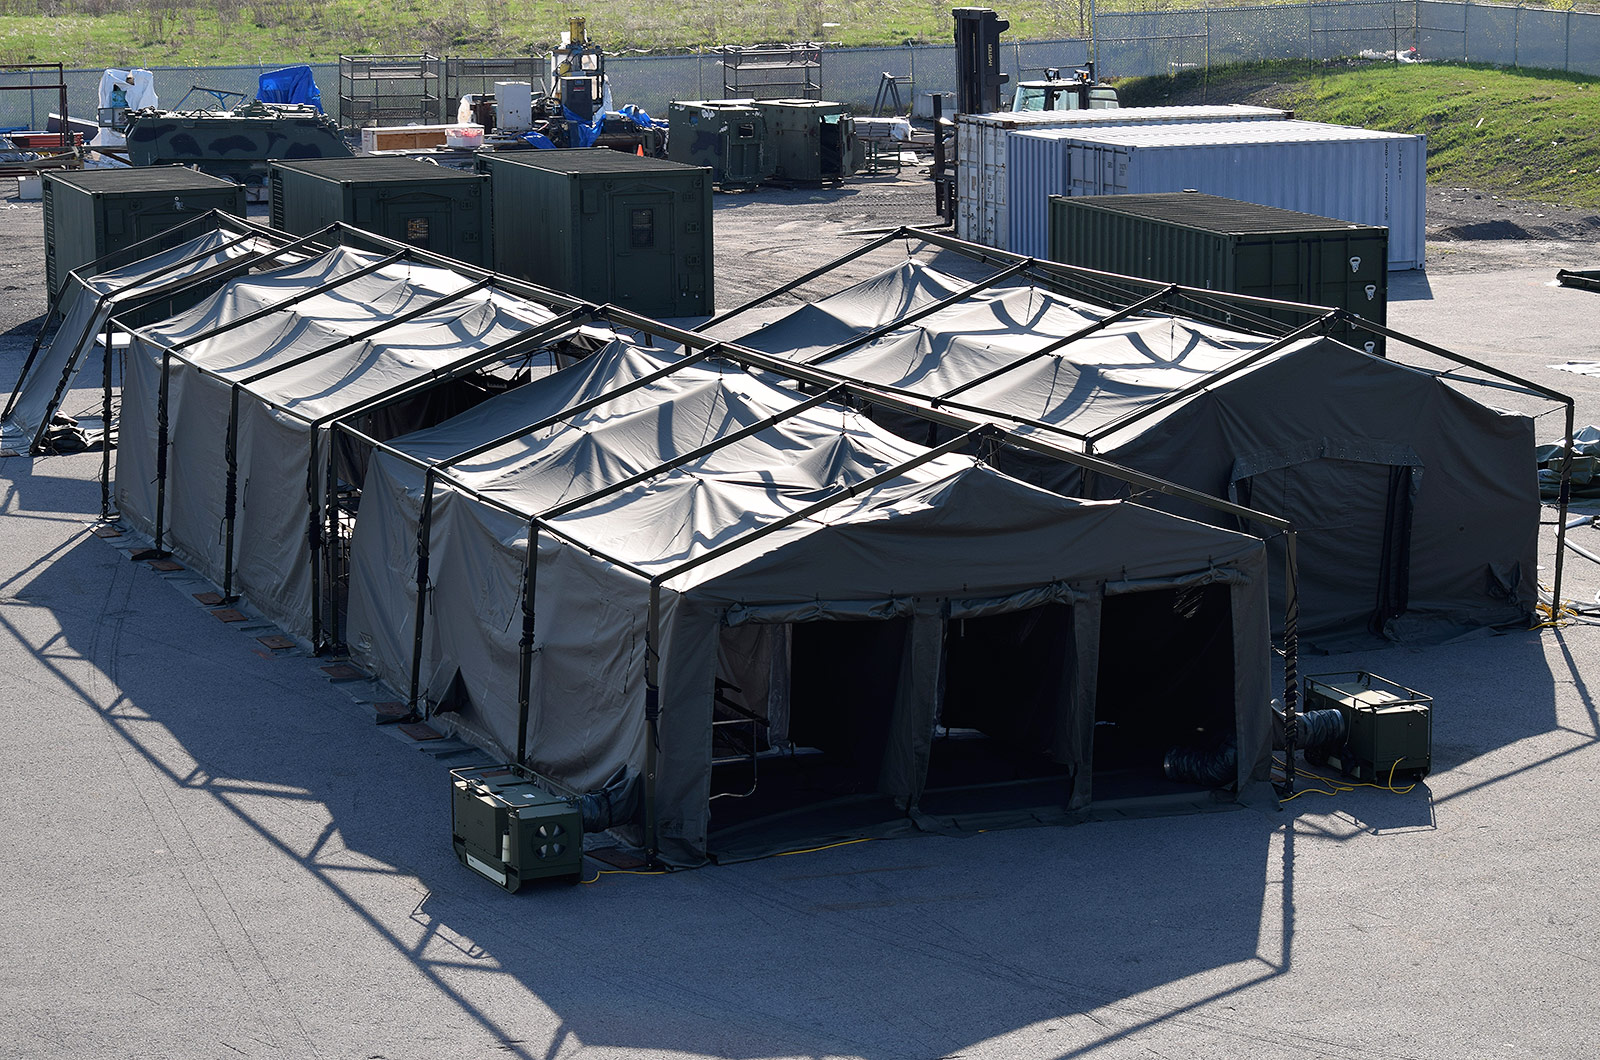 CBRN Personnel and Casualty Decontamination Shelters